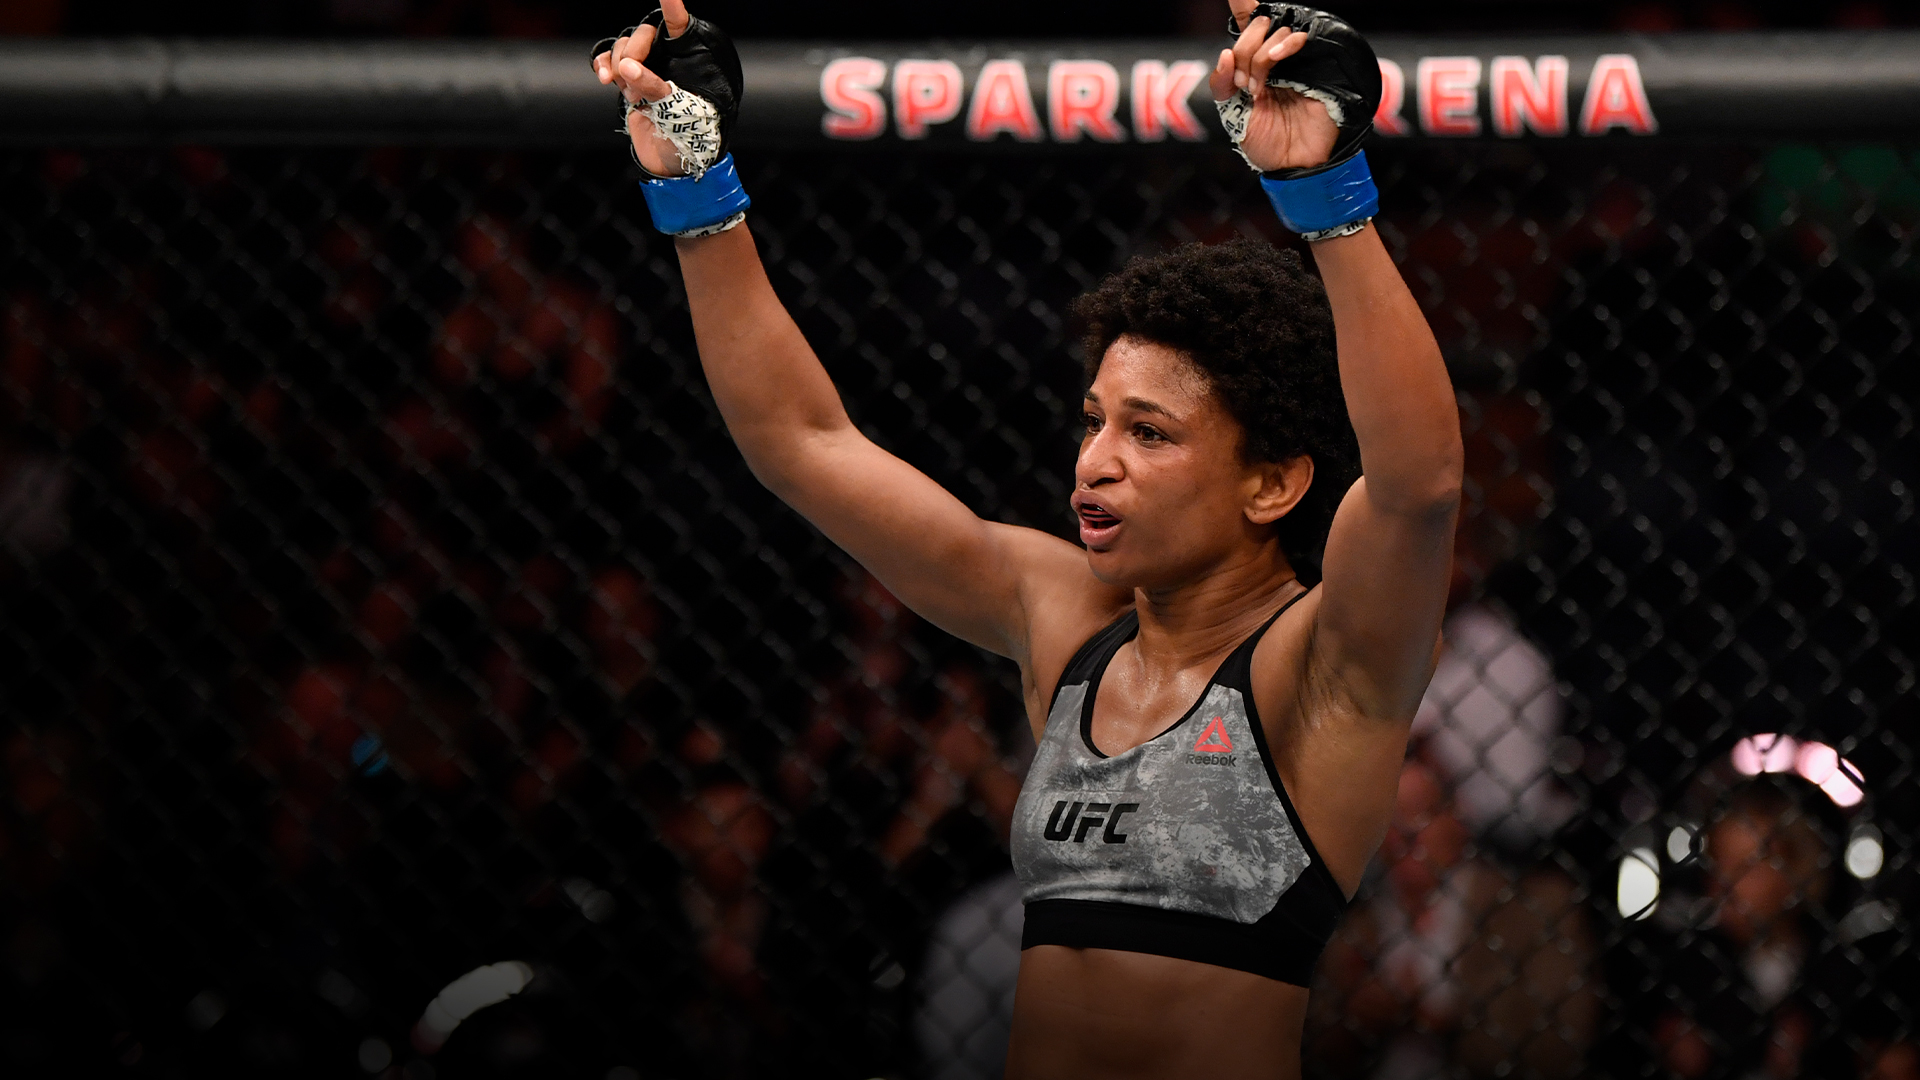 Angela Hill reacts after the conclusion of her strawweight bout against Loma Lookboonmee of Thailand during the UFC Fight Night event at Spark Arena on February 23, 2020 in Auckland, New Zealand. (Photo by Jeff Bottari/Zuffa LLC)